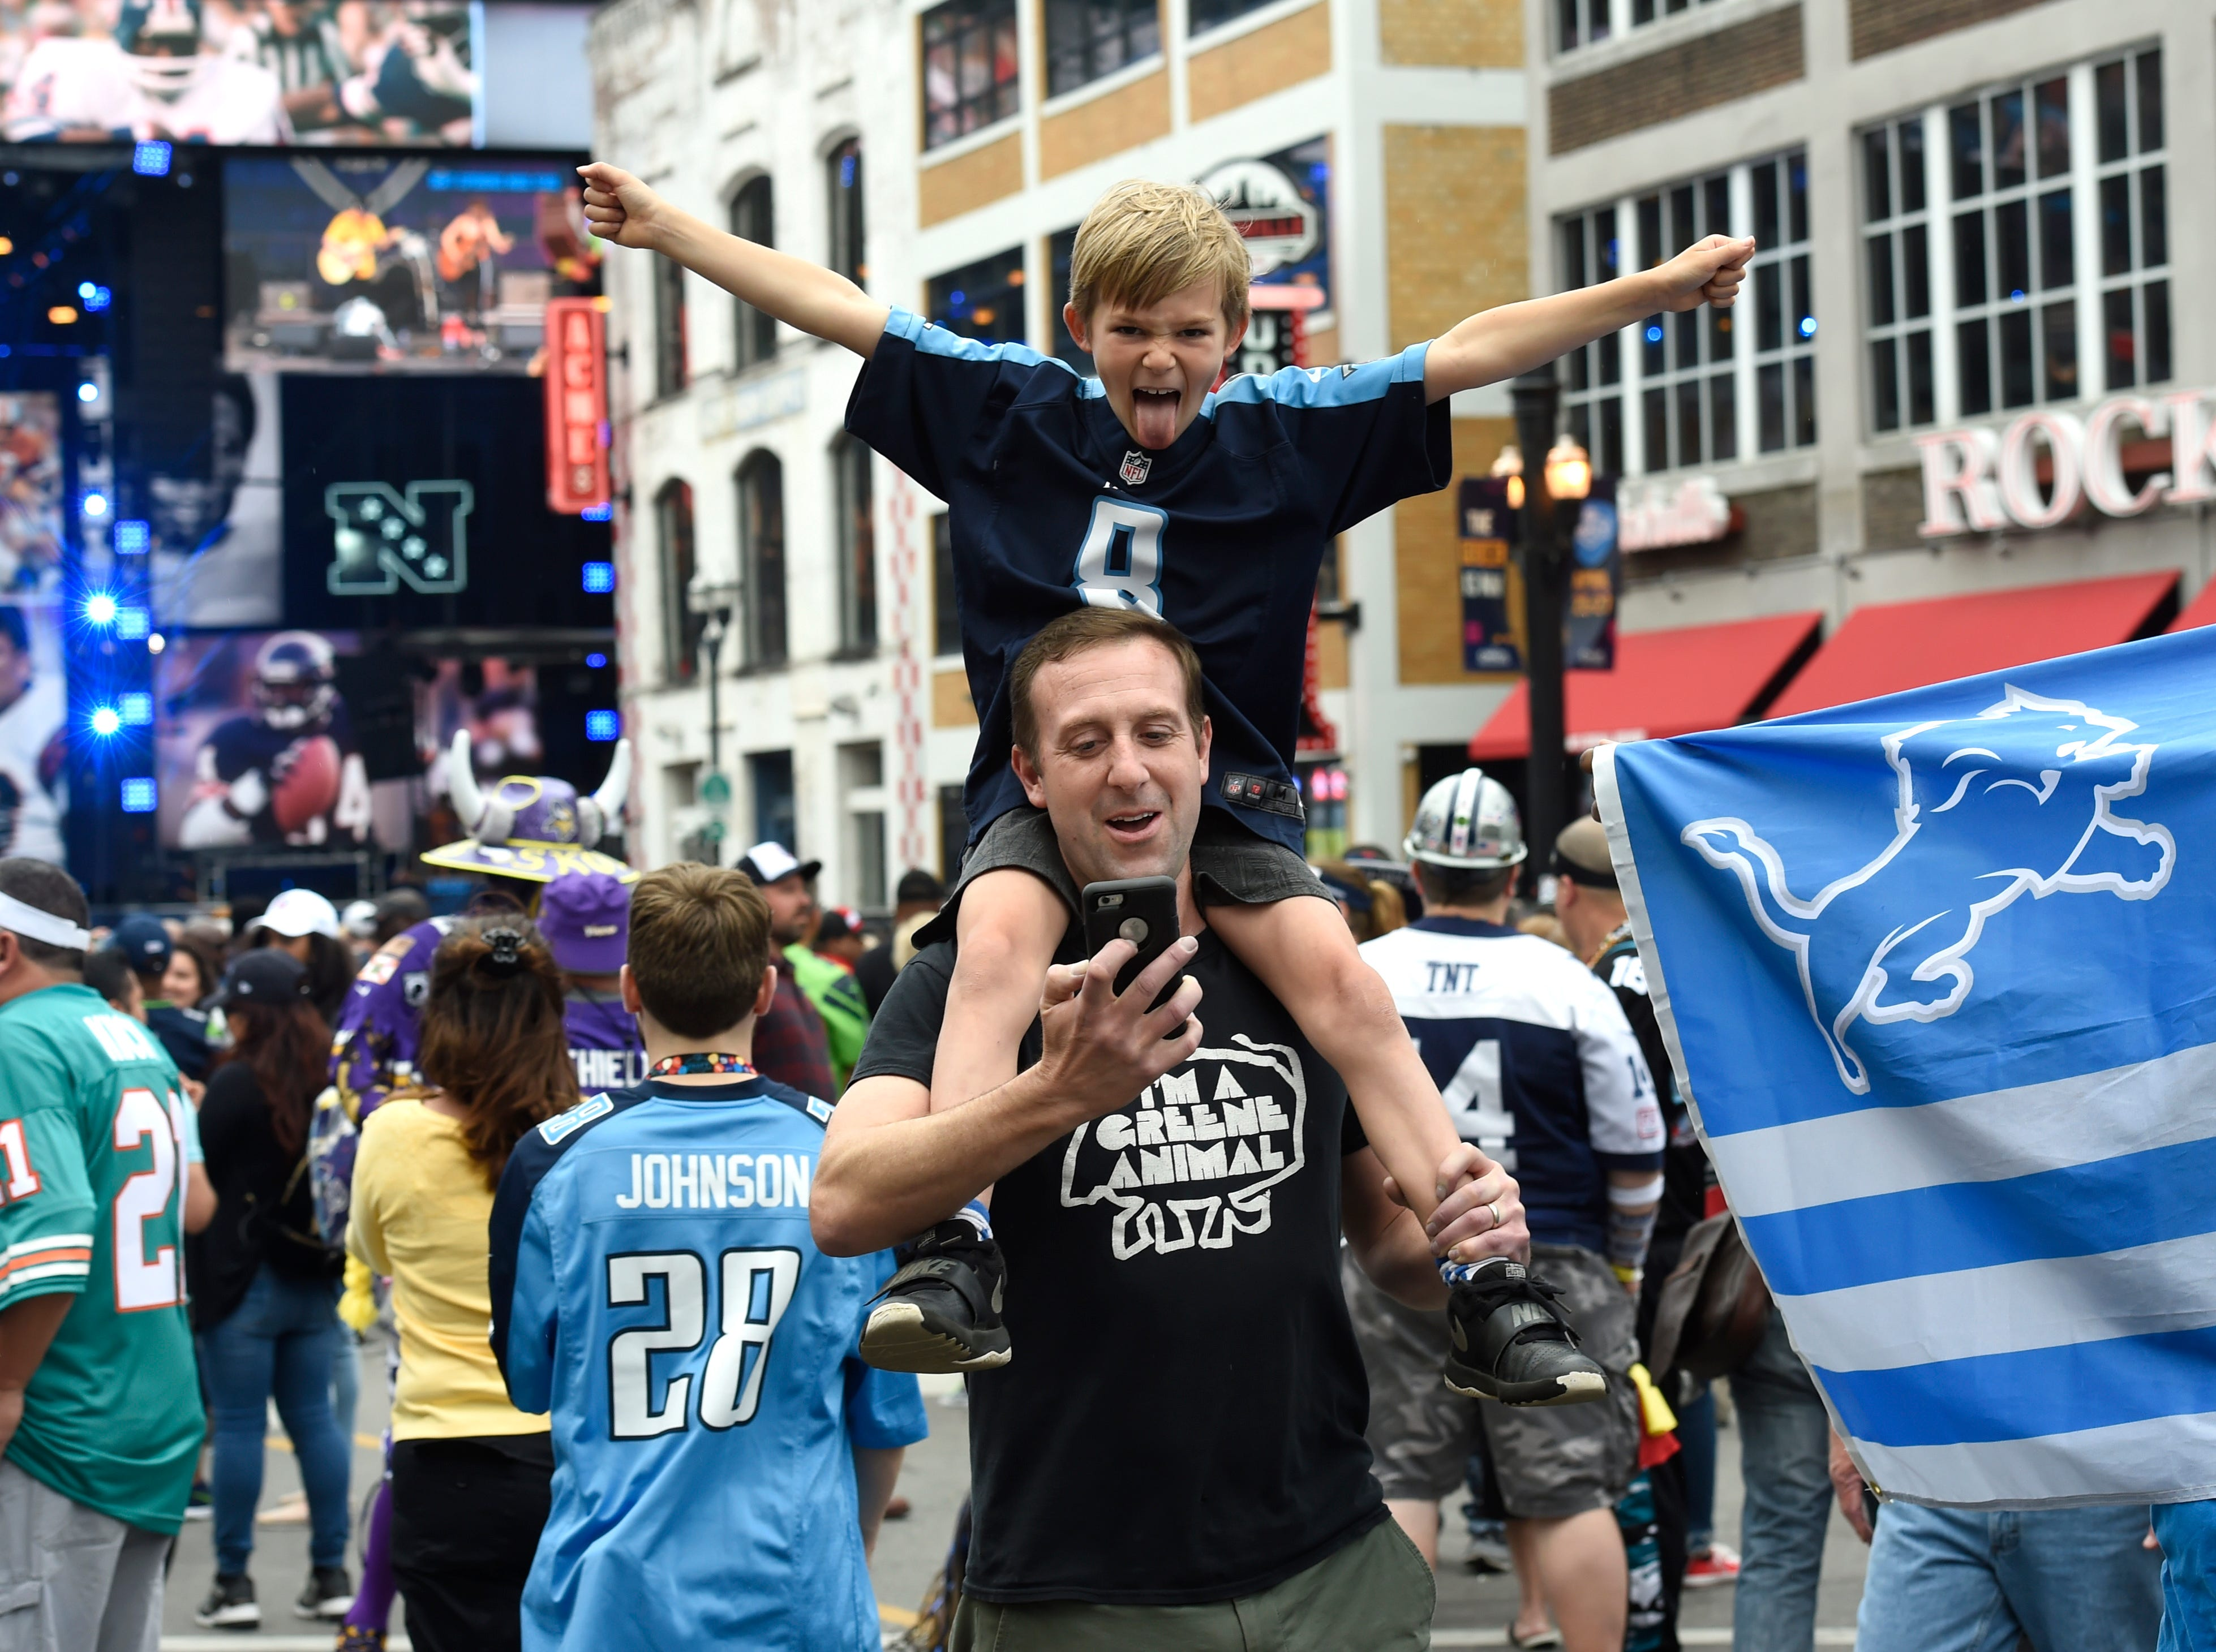 James Greene and his son, Jordan, enjoy Lower Broadway before the start of the first round of the NFL Draft Thursday, April 25, 2019 in Nashville, Tenn.